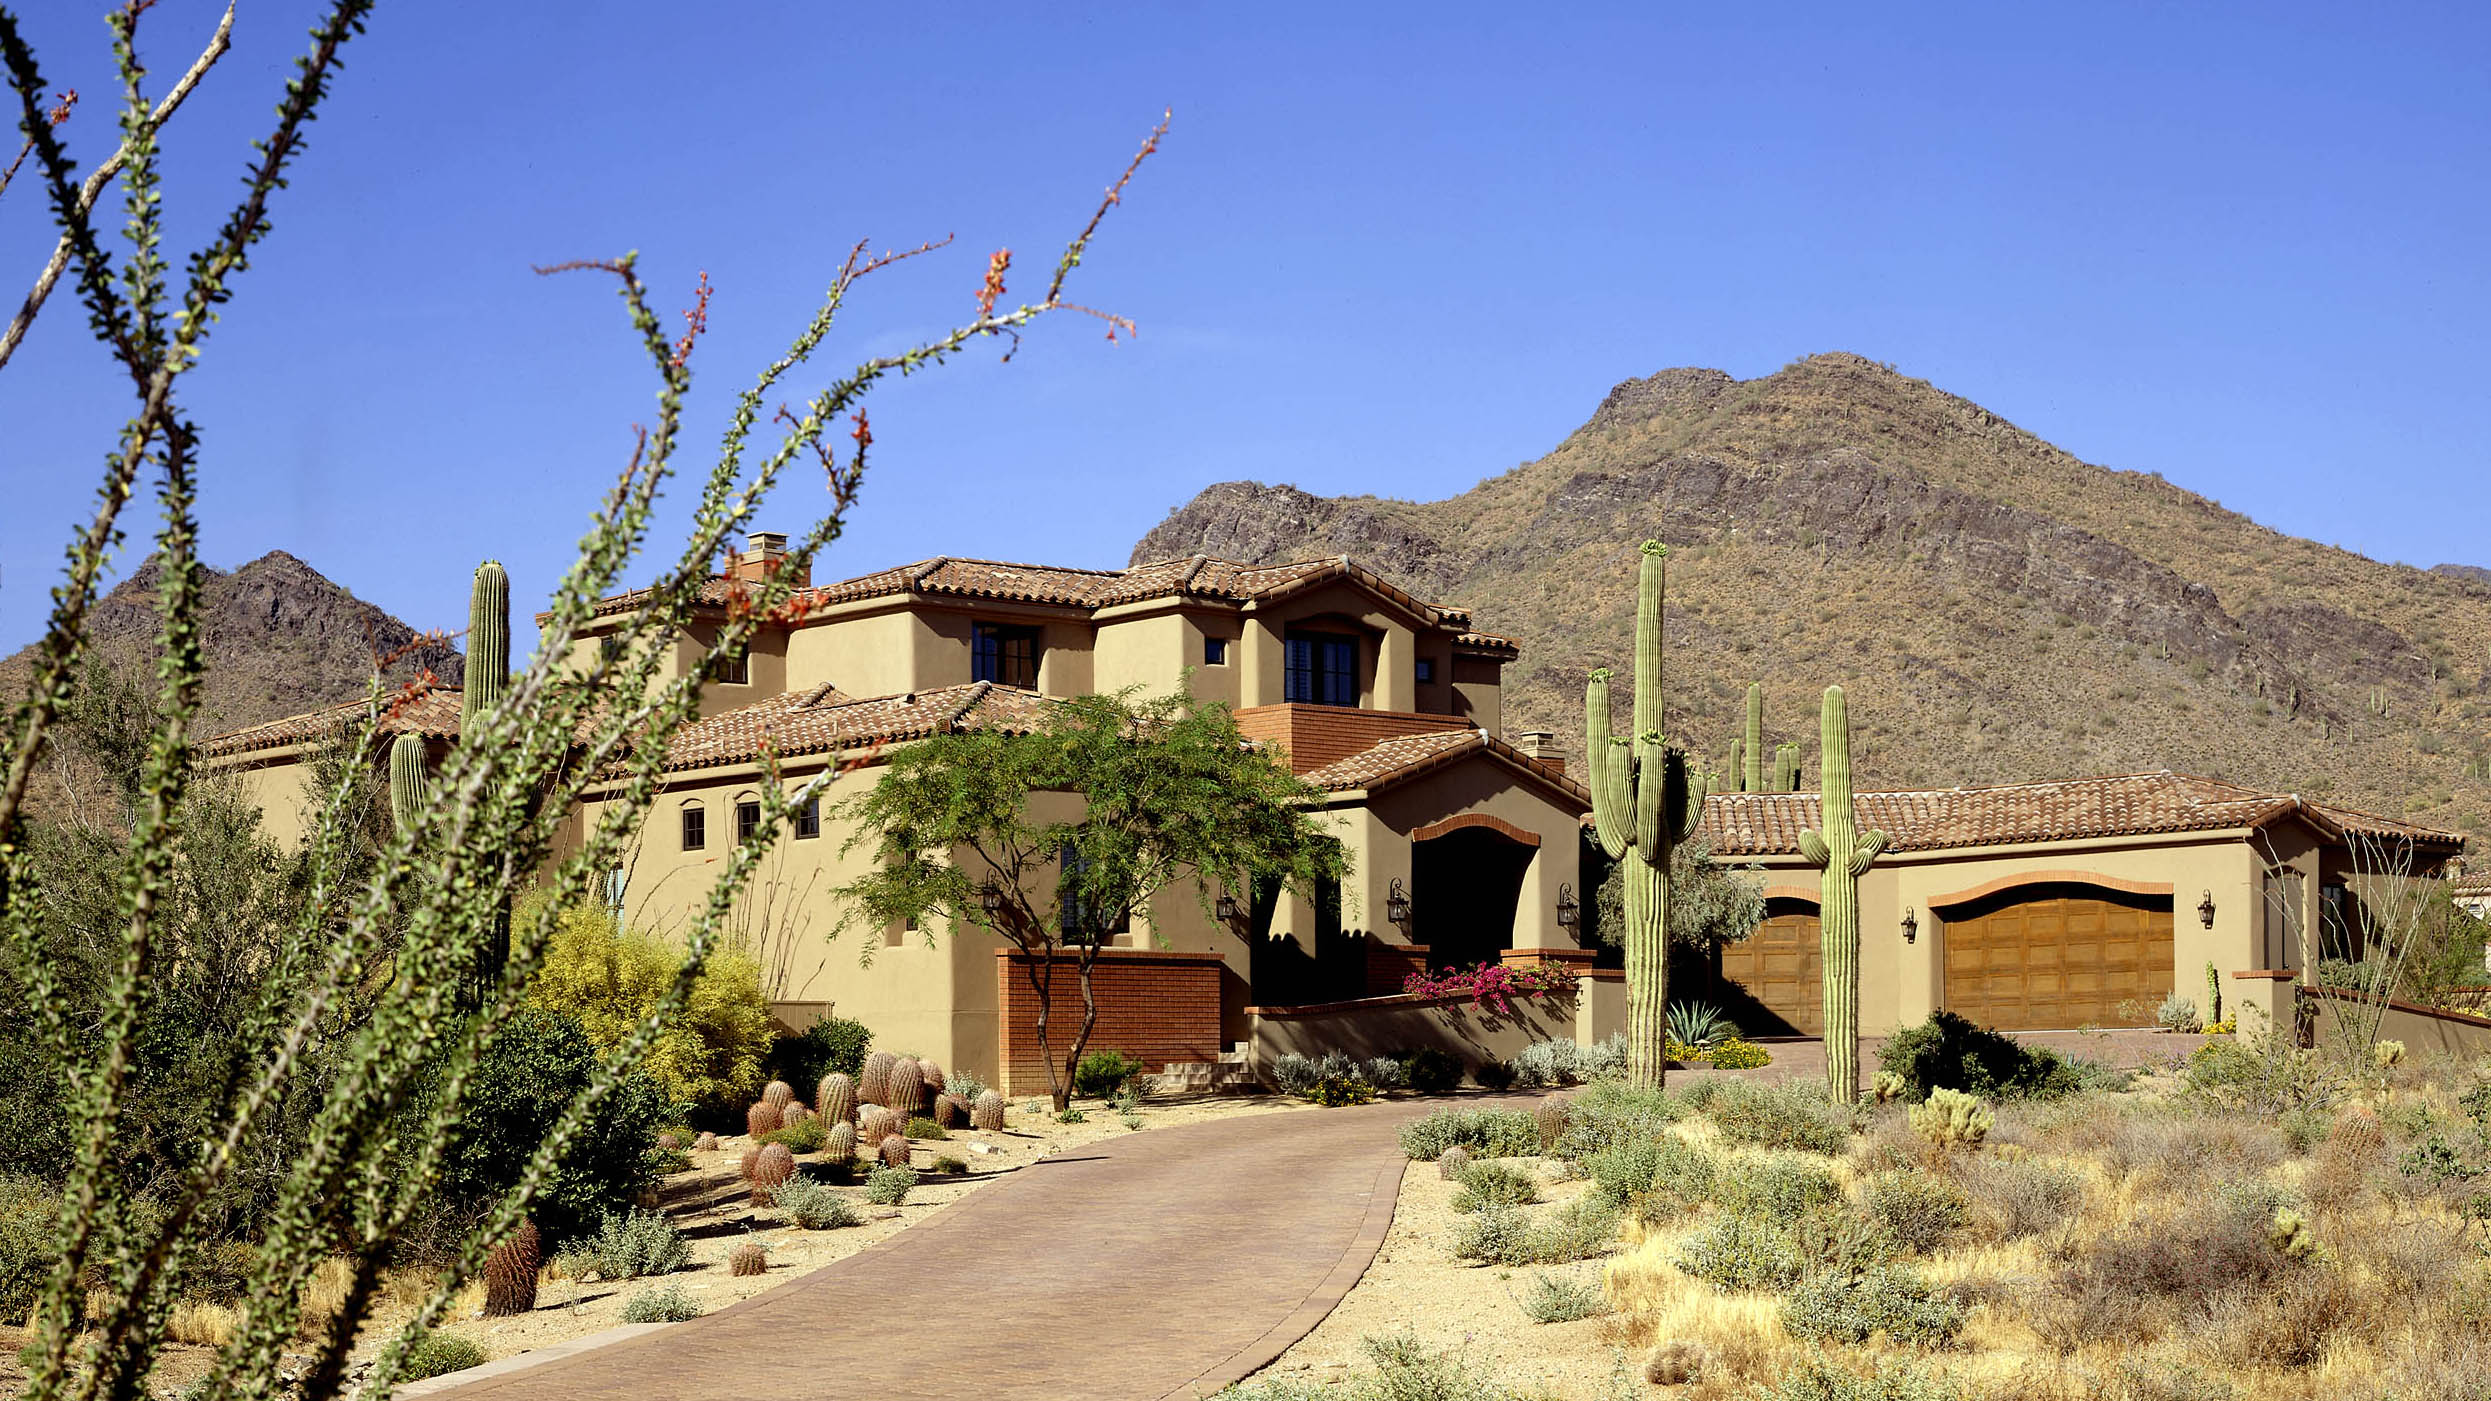 How to find the right arizona custom home builder for you